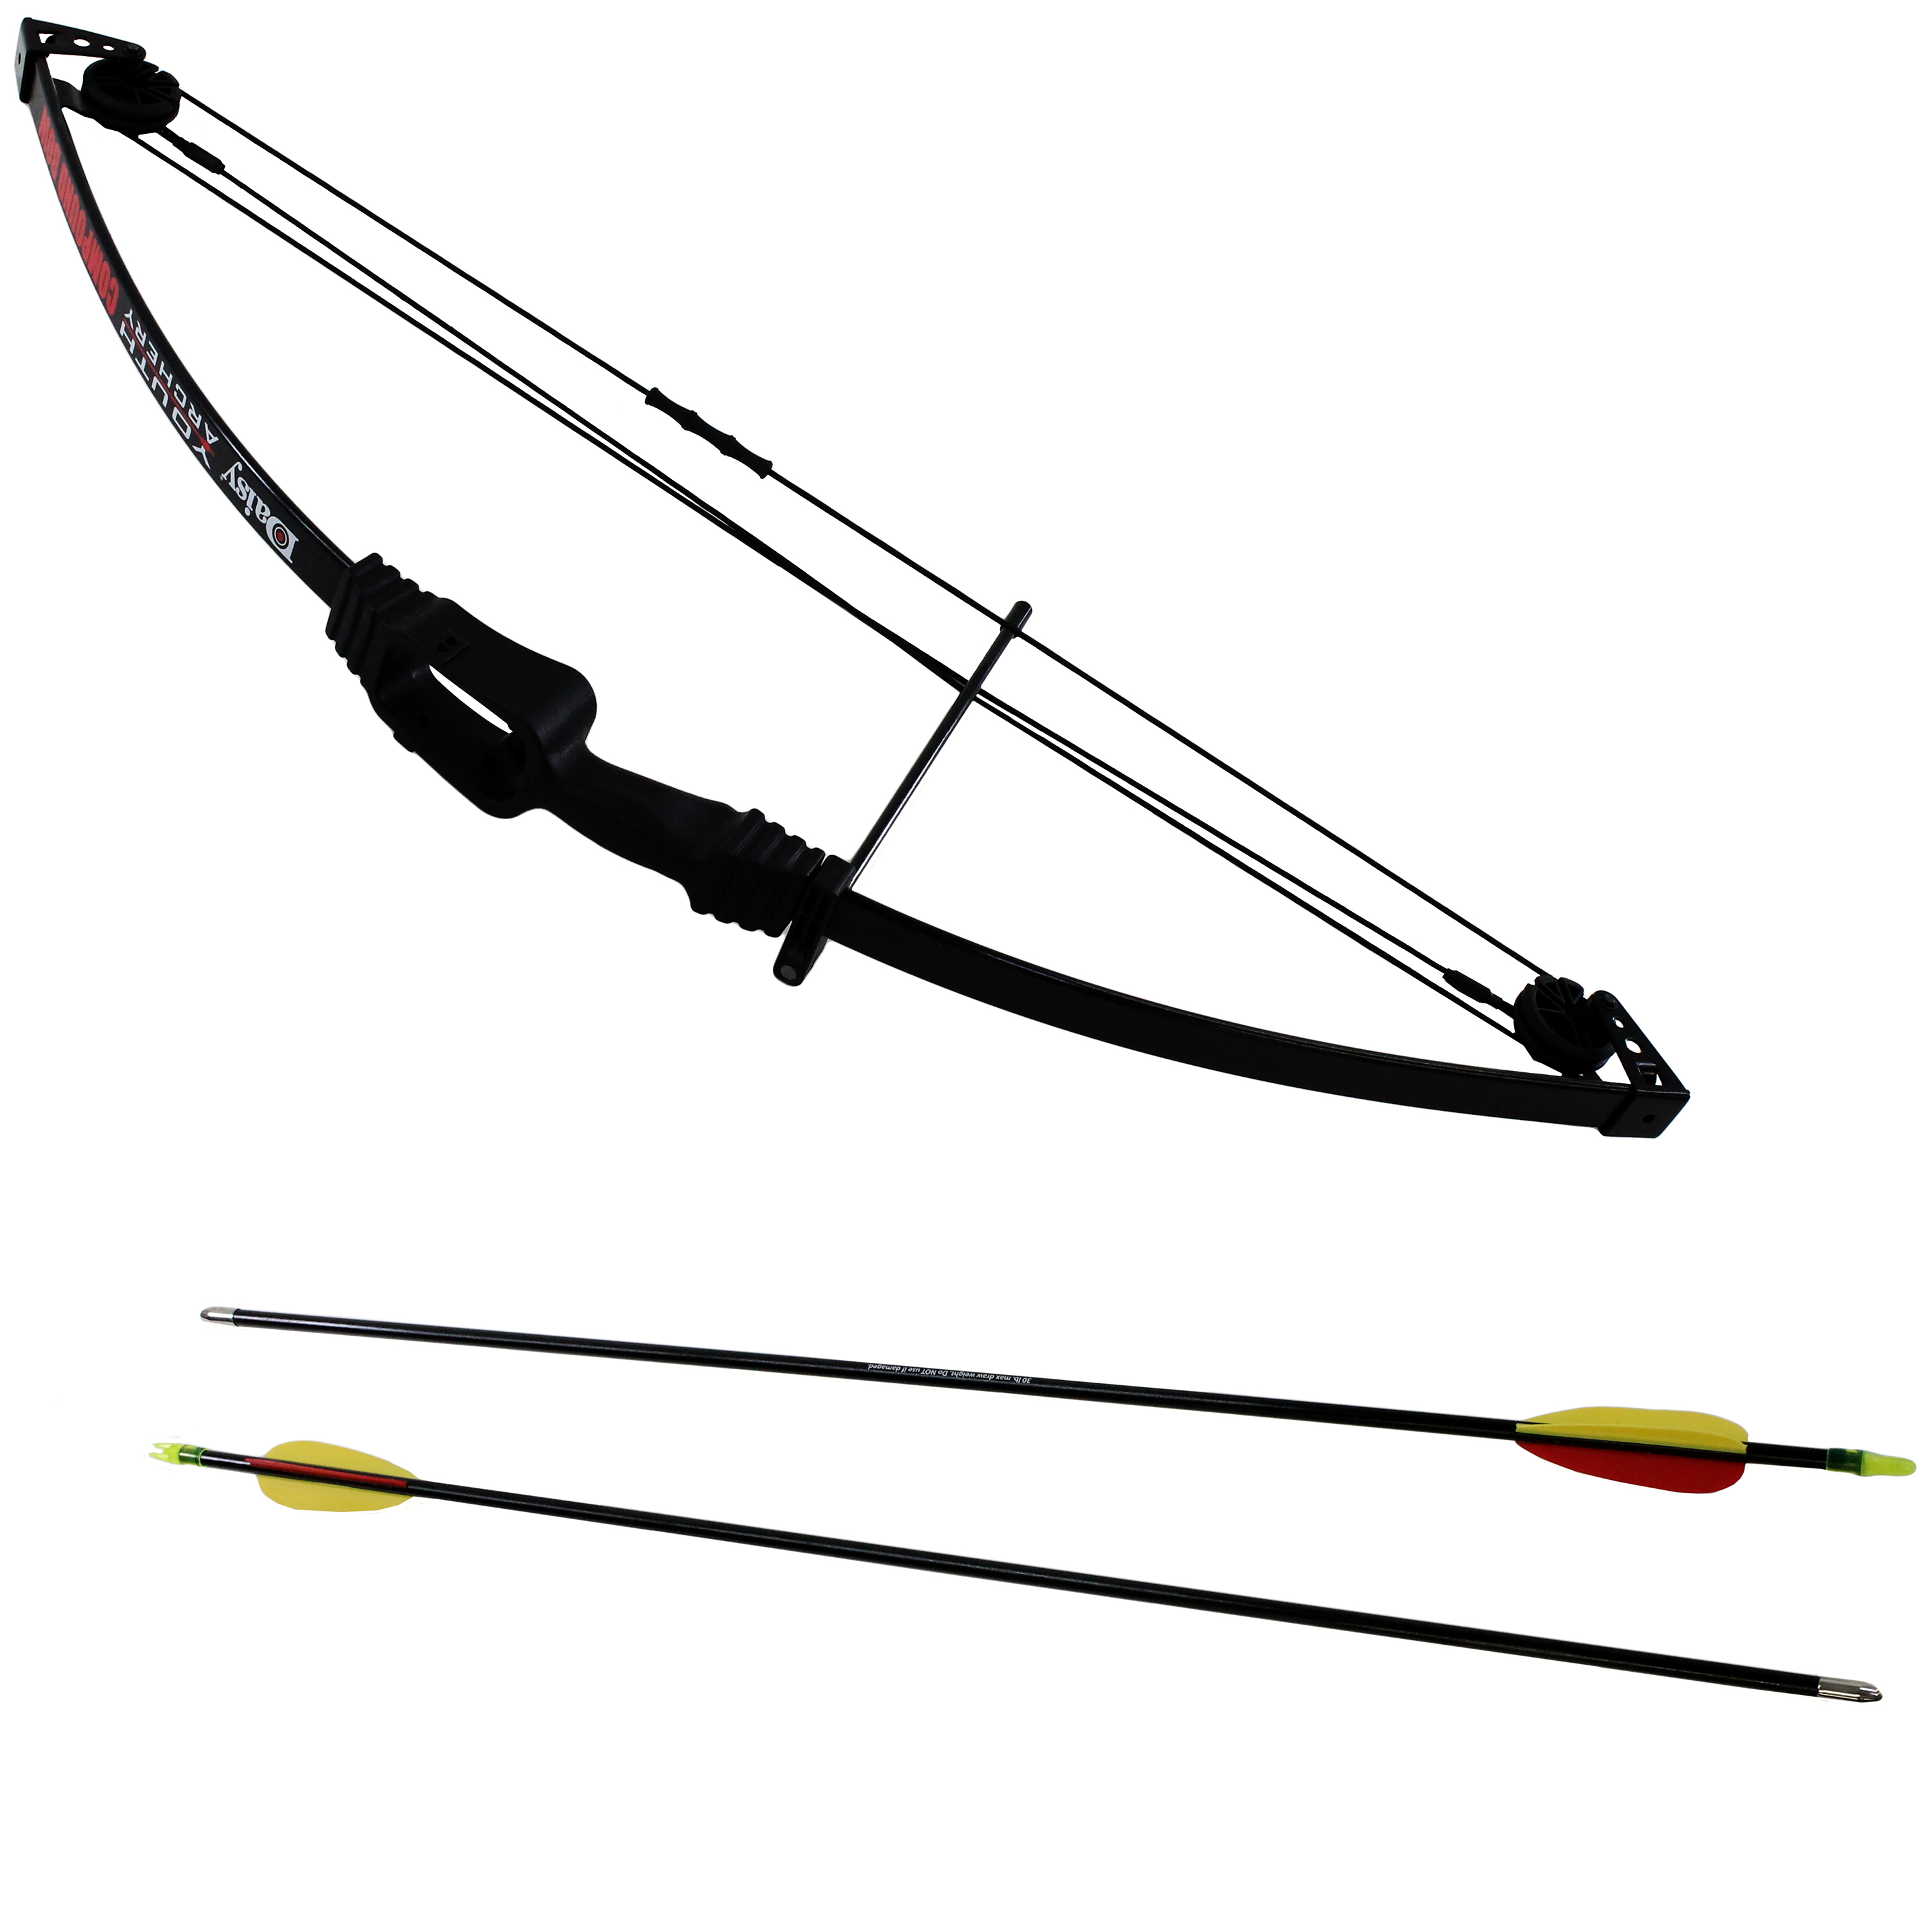 Daisy Outdoor Products Youth Package Compound Bow Ambidextrous 13